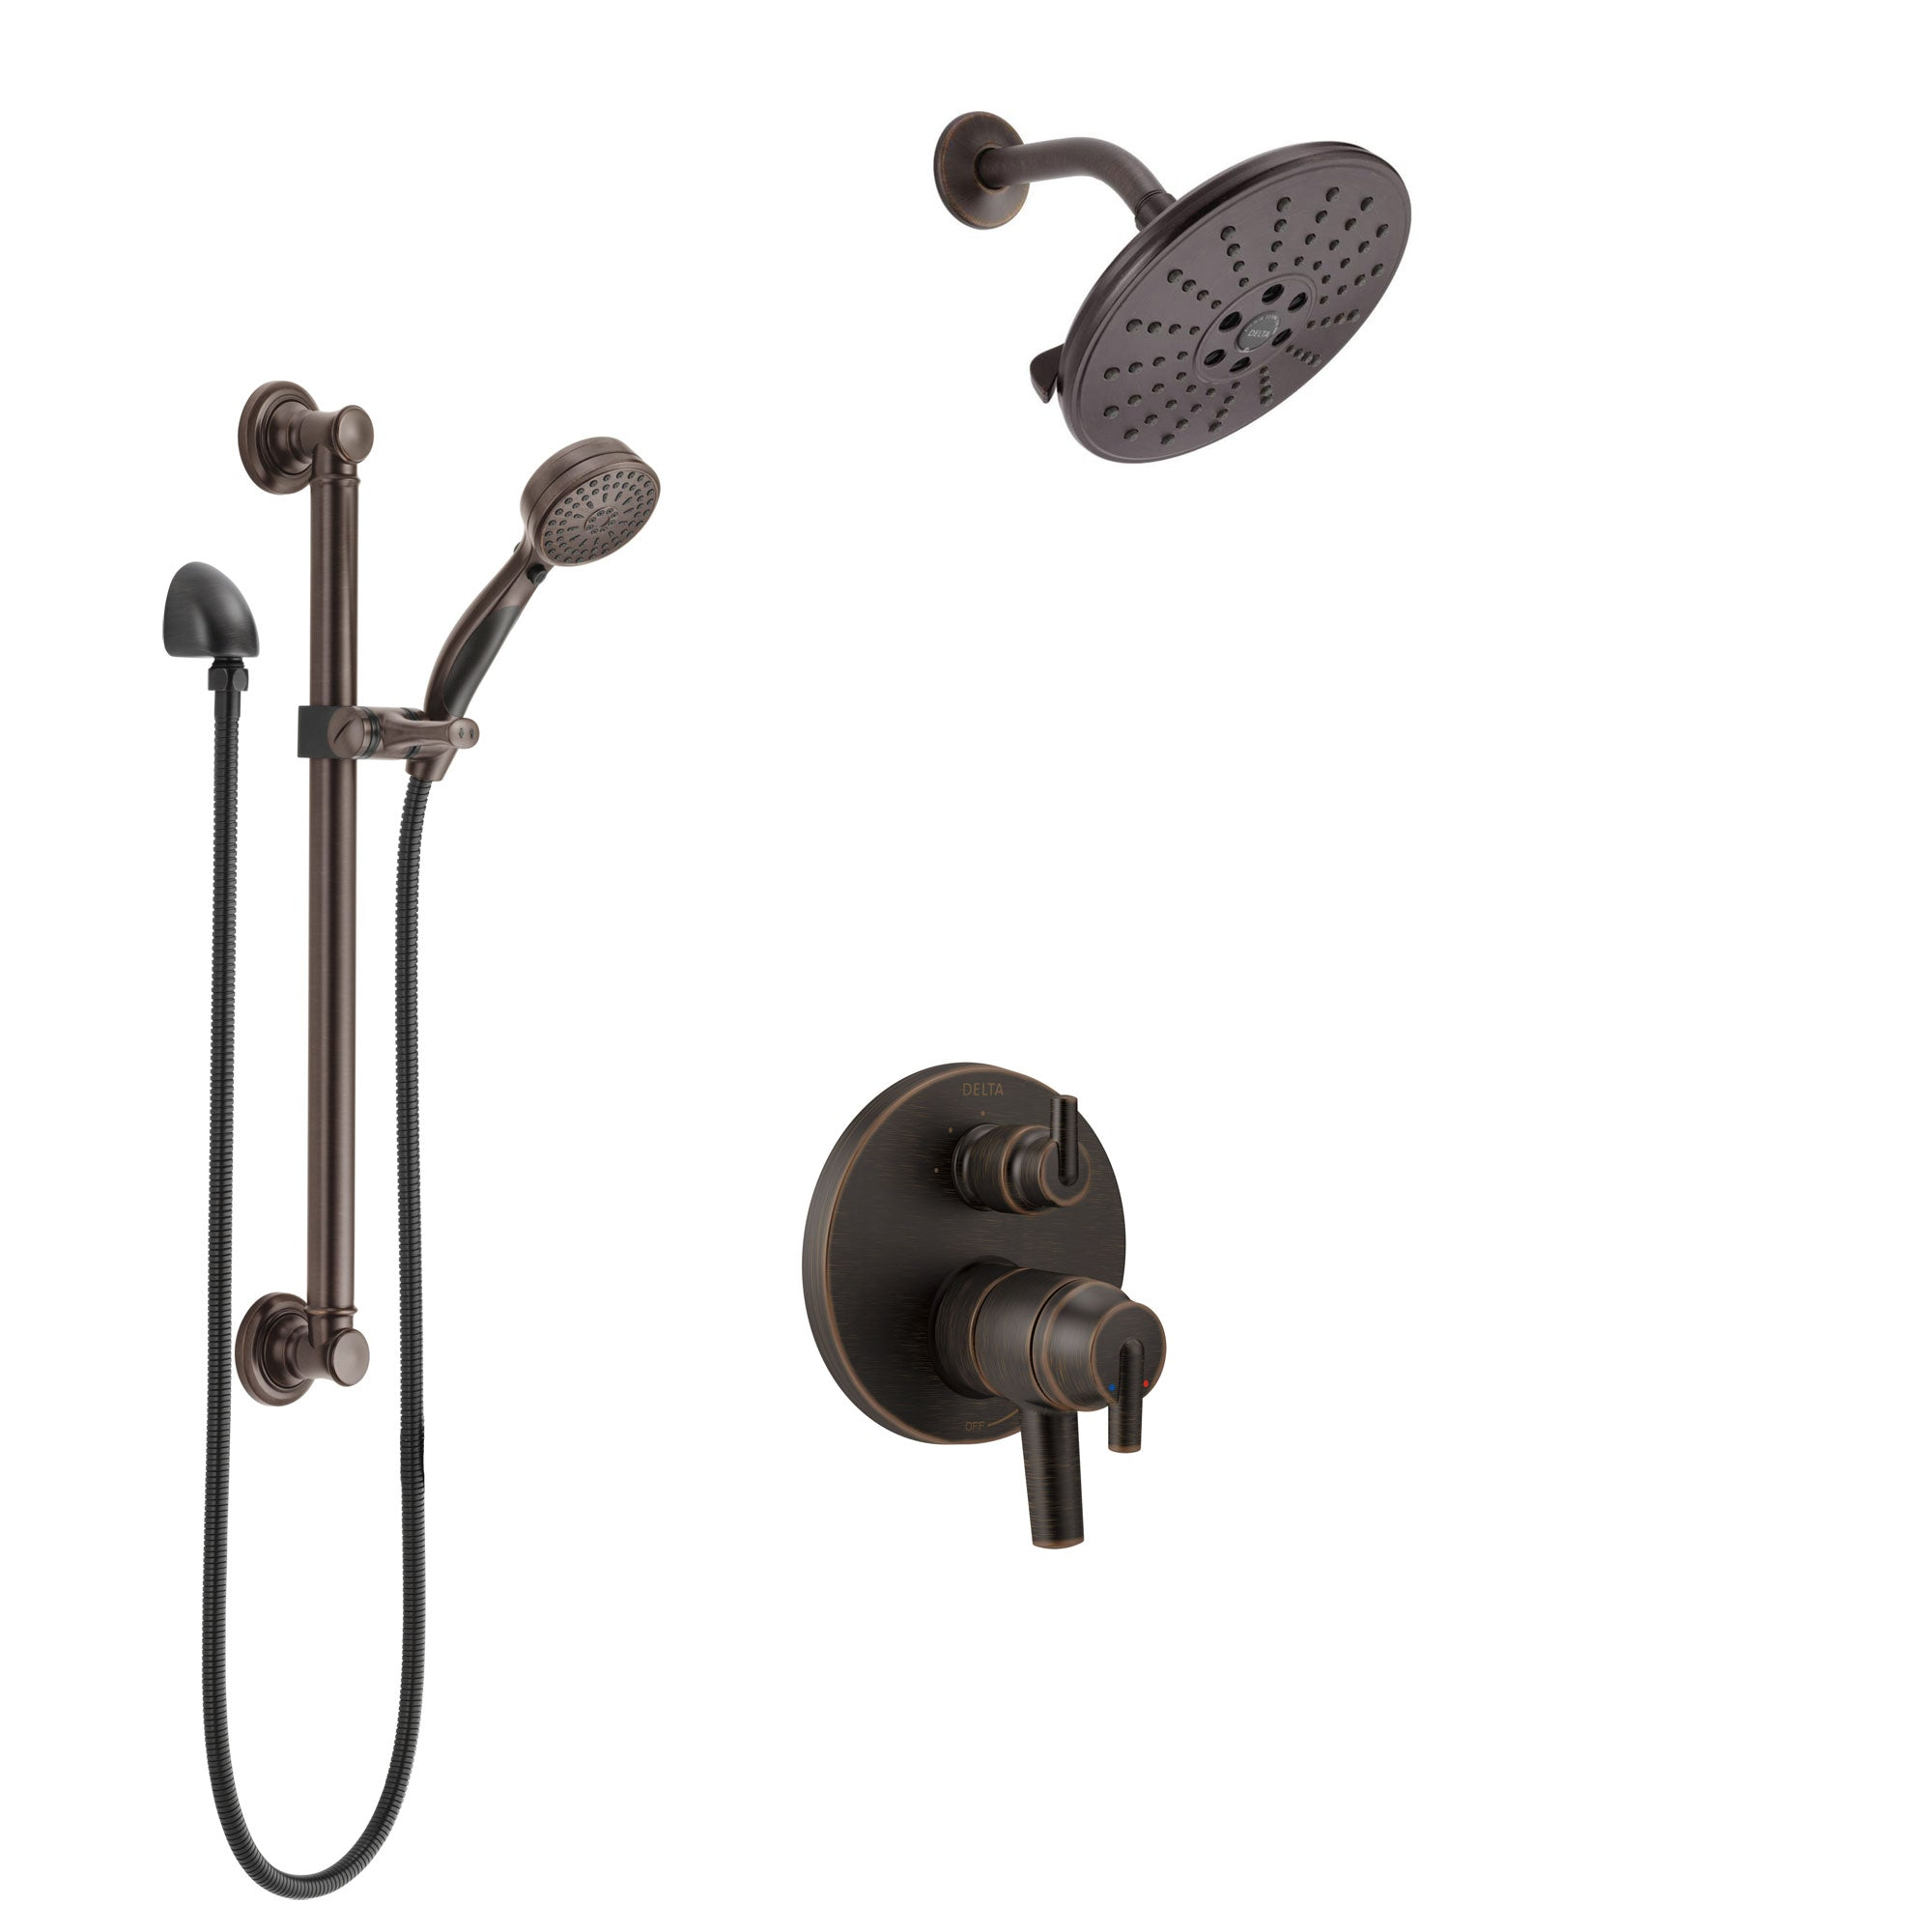 Delta Trinsic Venetian Bronze Shower System with Dual Control Handle, Integrated Diverter, Showerhead, and Hand Shower with Grab Bar SS27859RB3